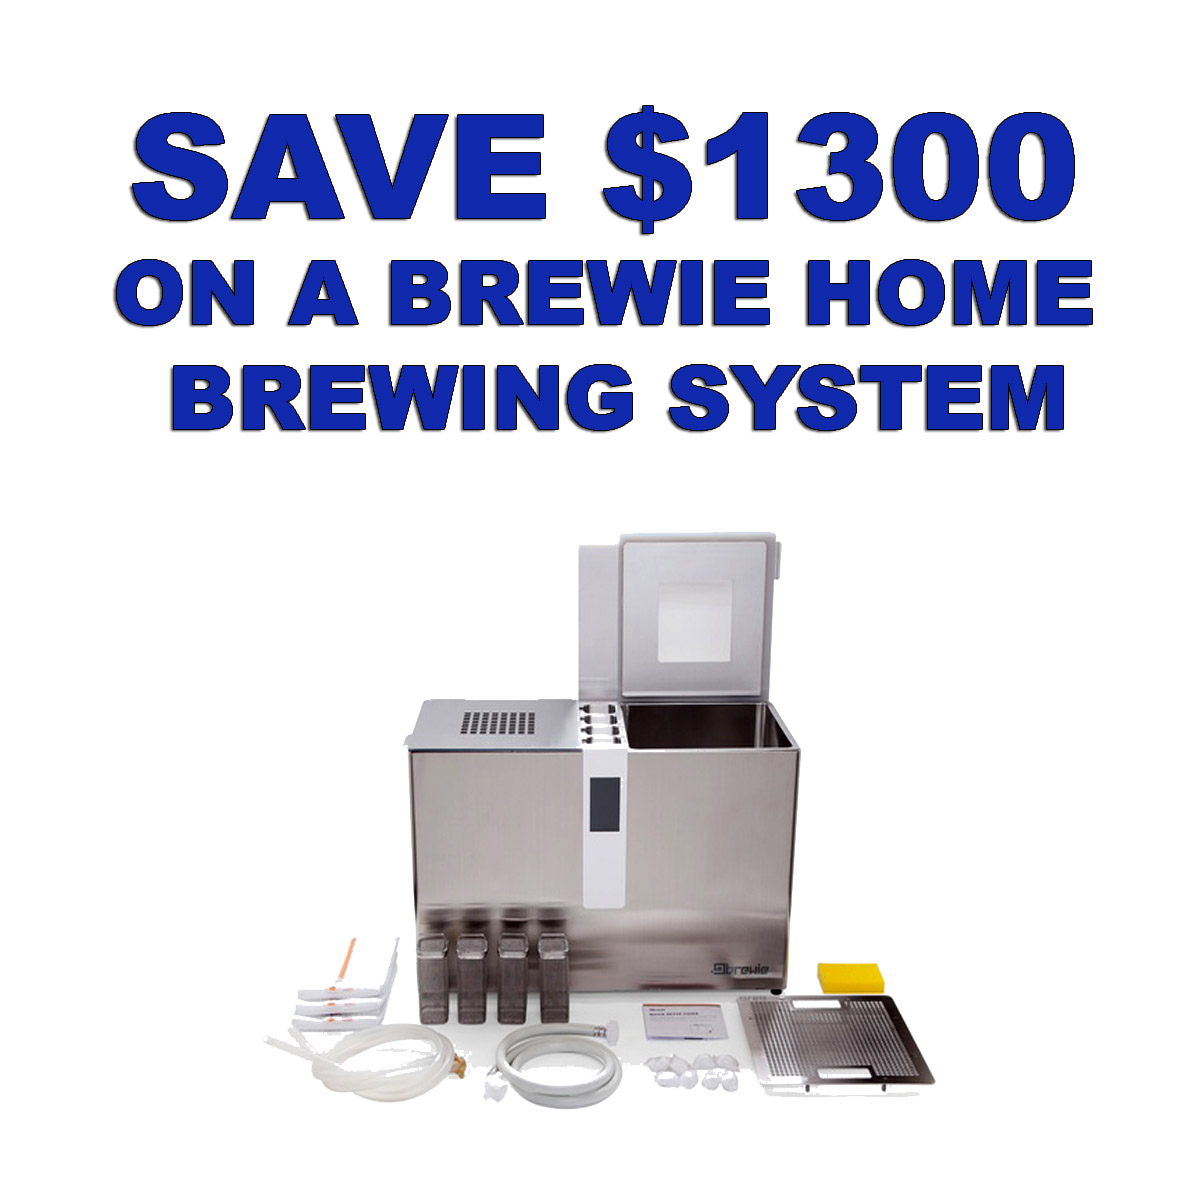 MoreBeer Get A Brewie Automated Home Brewing System for Just $999 and Save $1300 with Promo Code BEERDEAL Coupon Code